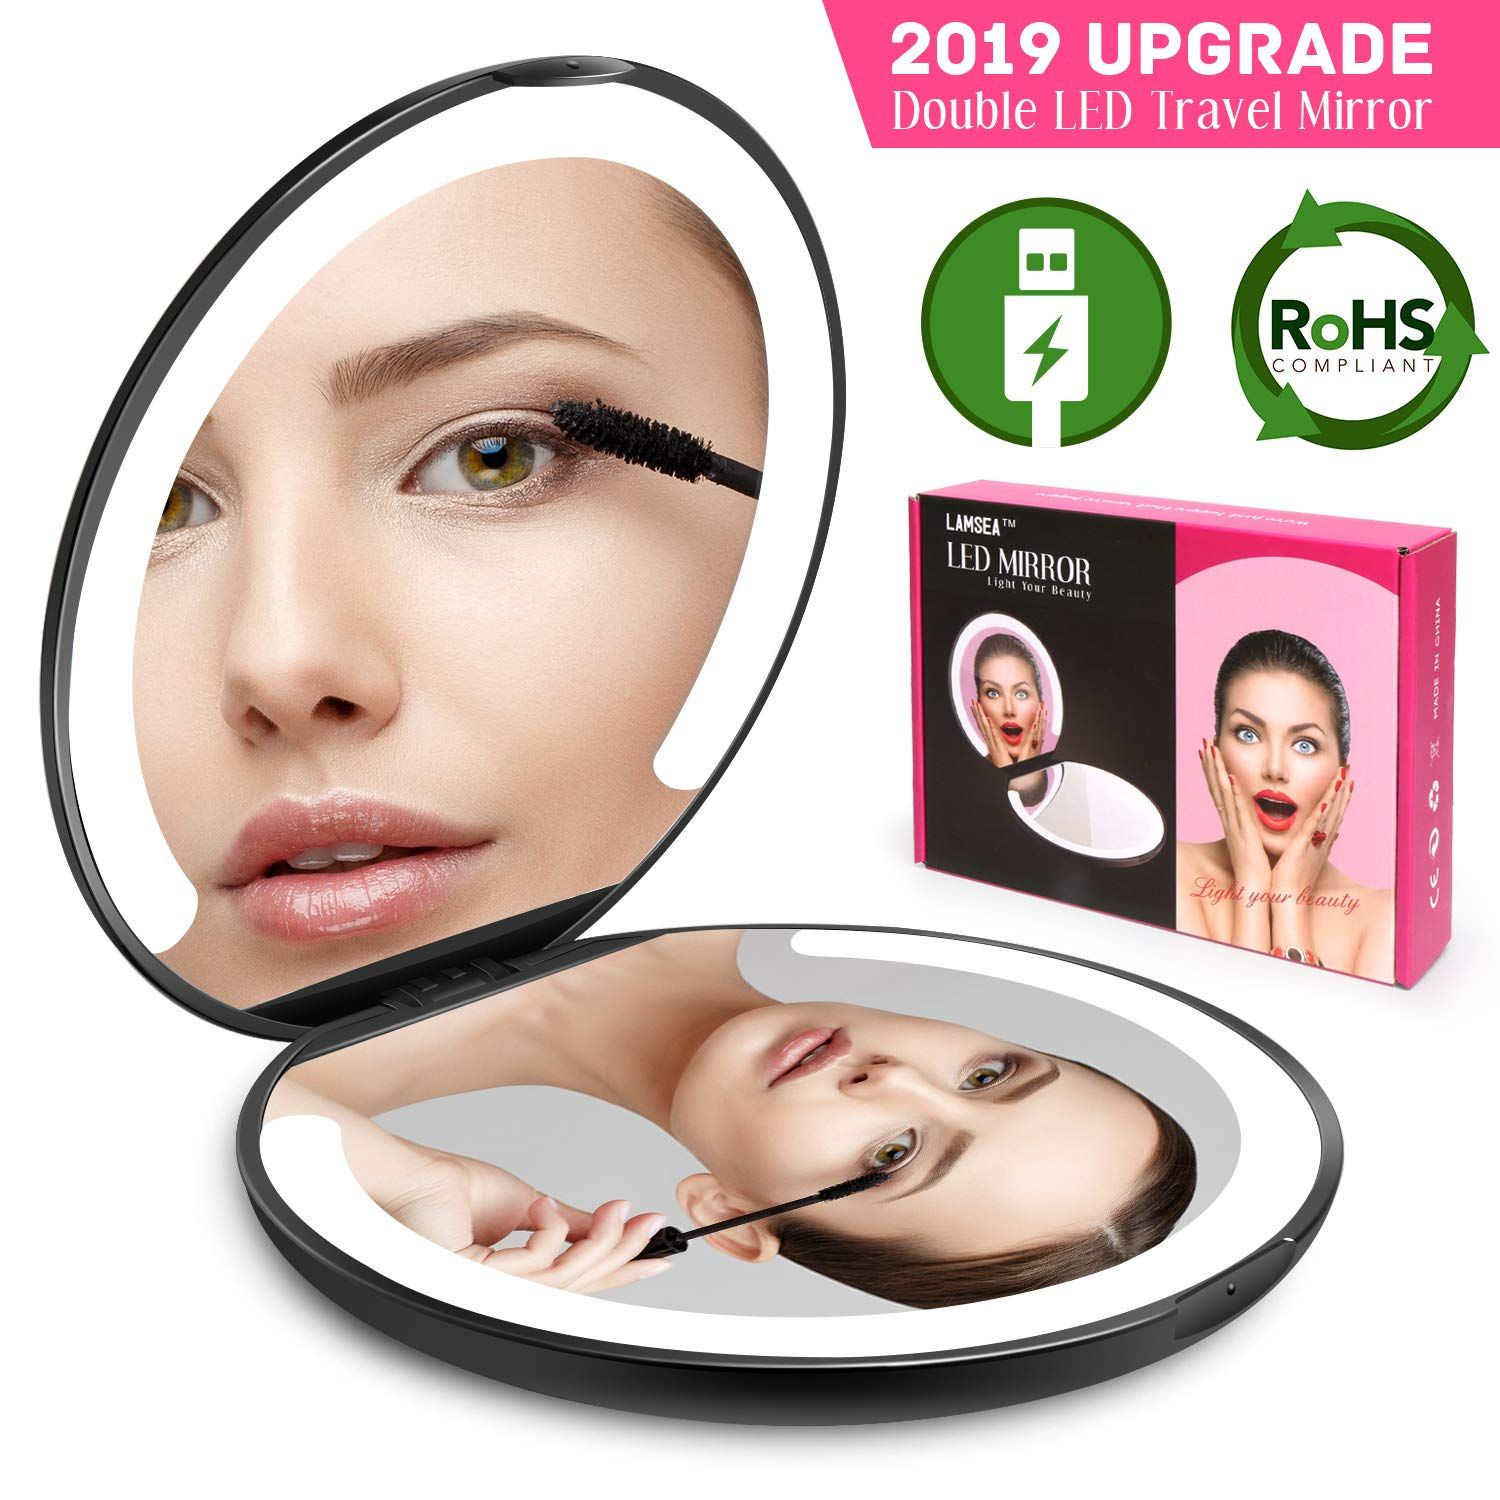 LED Lighted Travel Makeup Mirror Foldable, Dual Sided